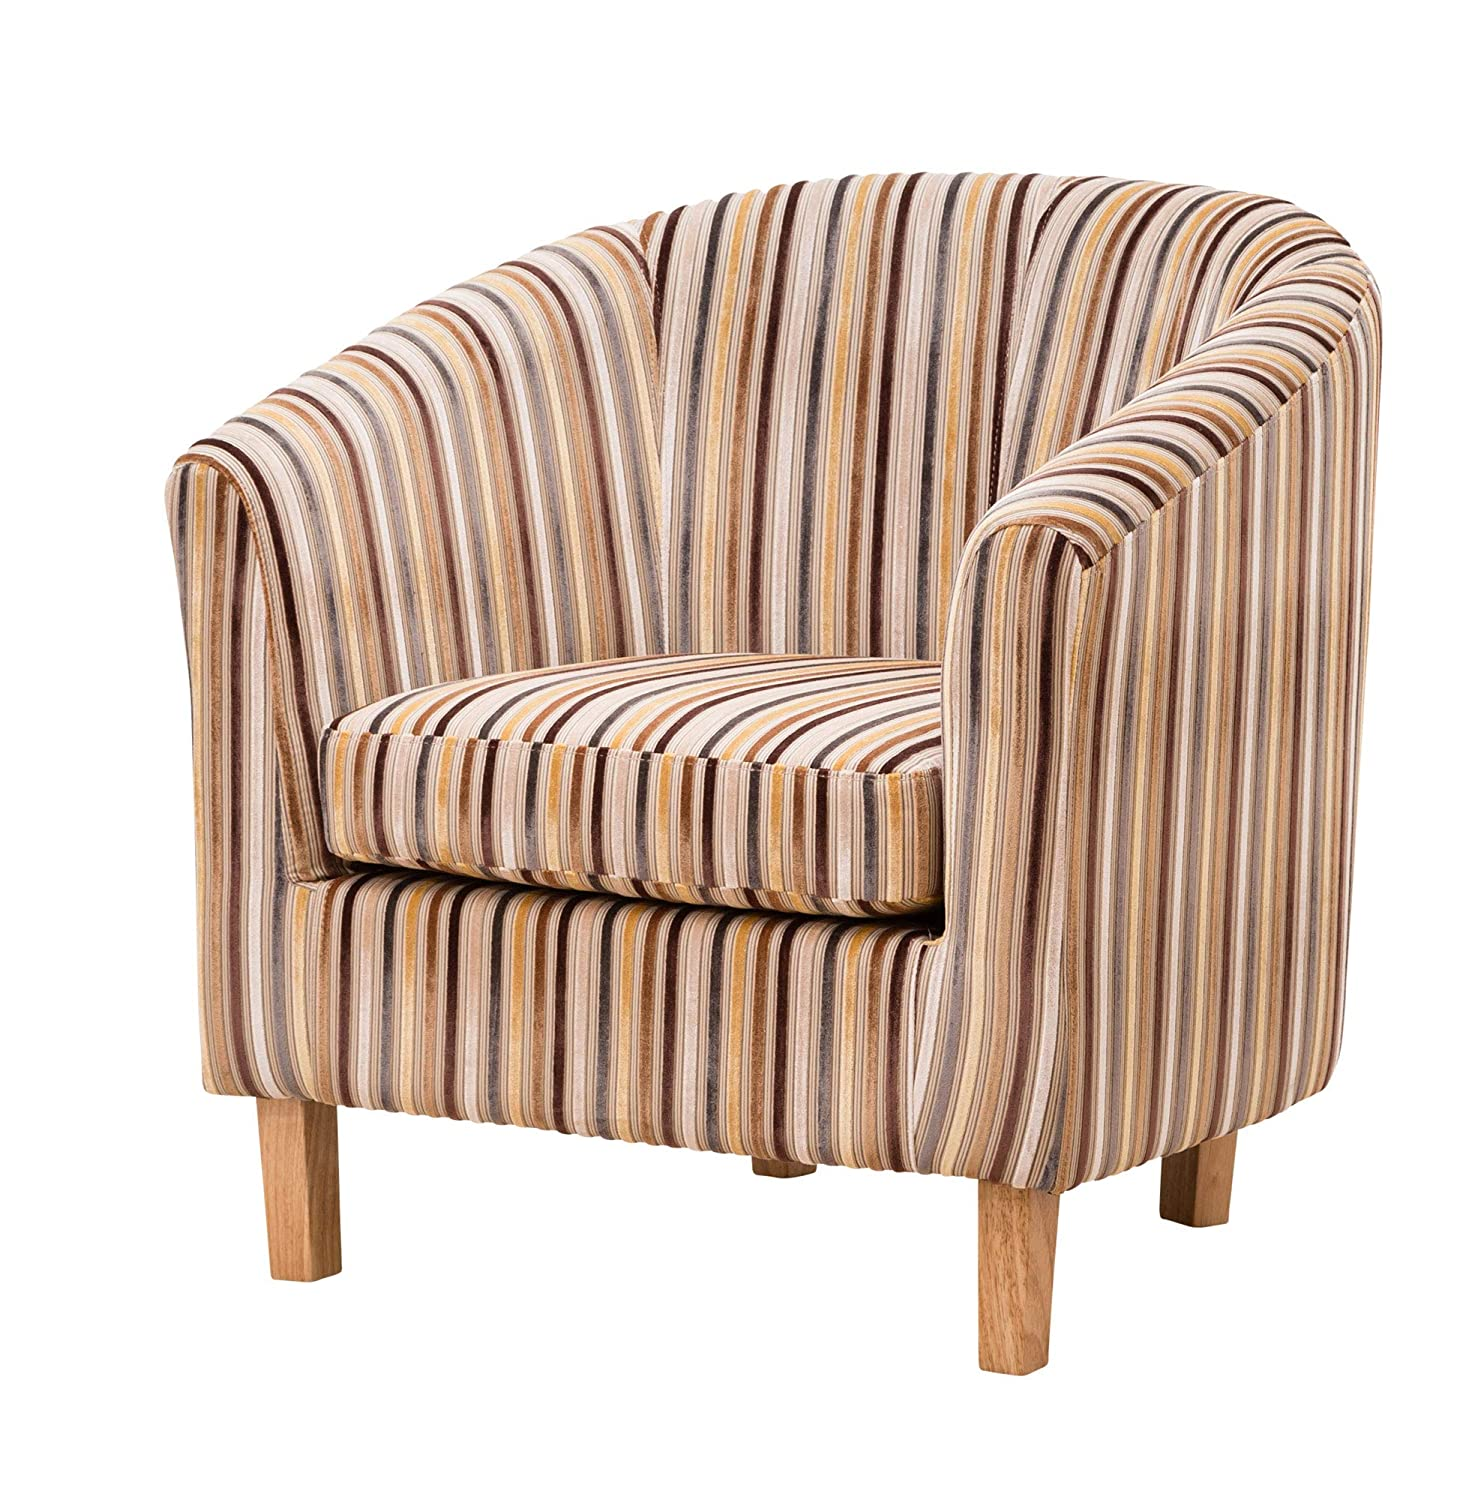 Sofa Collection Amboise Striped Tub Chair/Armchair Seating, Fabric, Brown, 70 x 76 x 73 cm 5060363585052